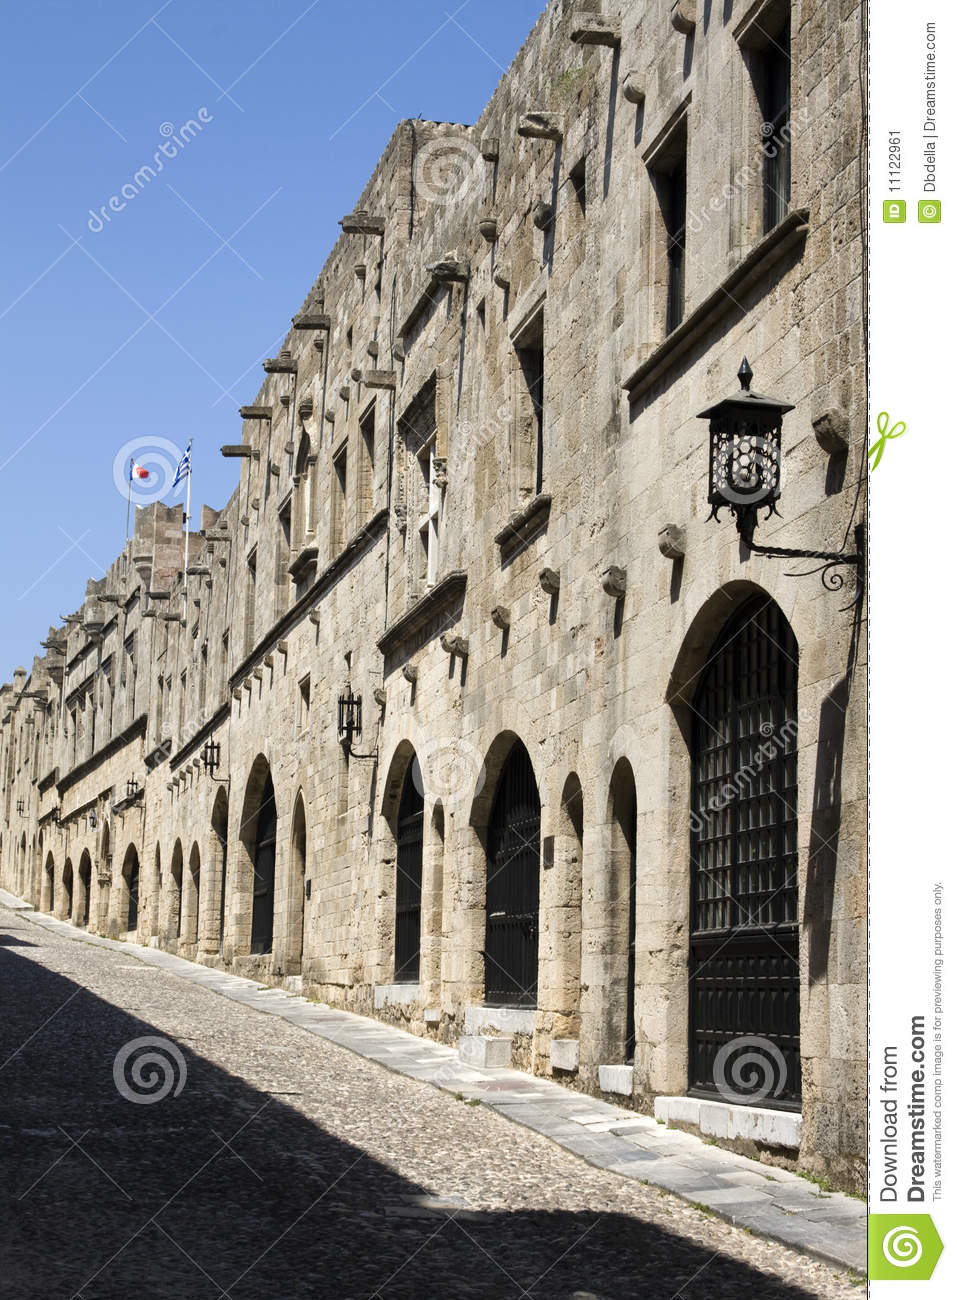 Rhodes - Street Of The Knights Stock Image - Image: 11122961